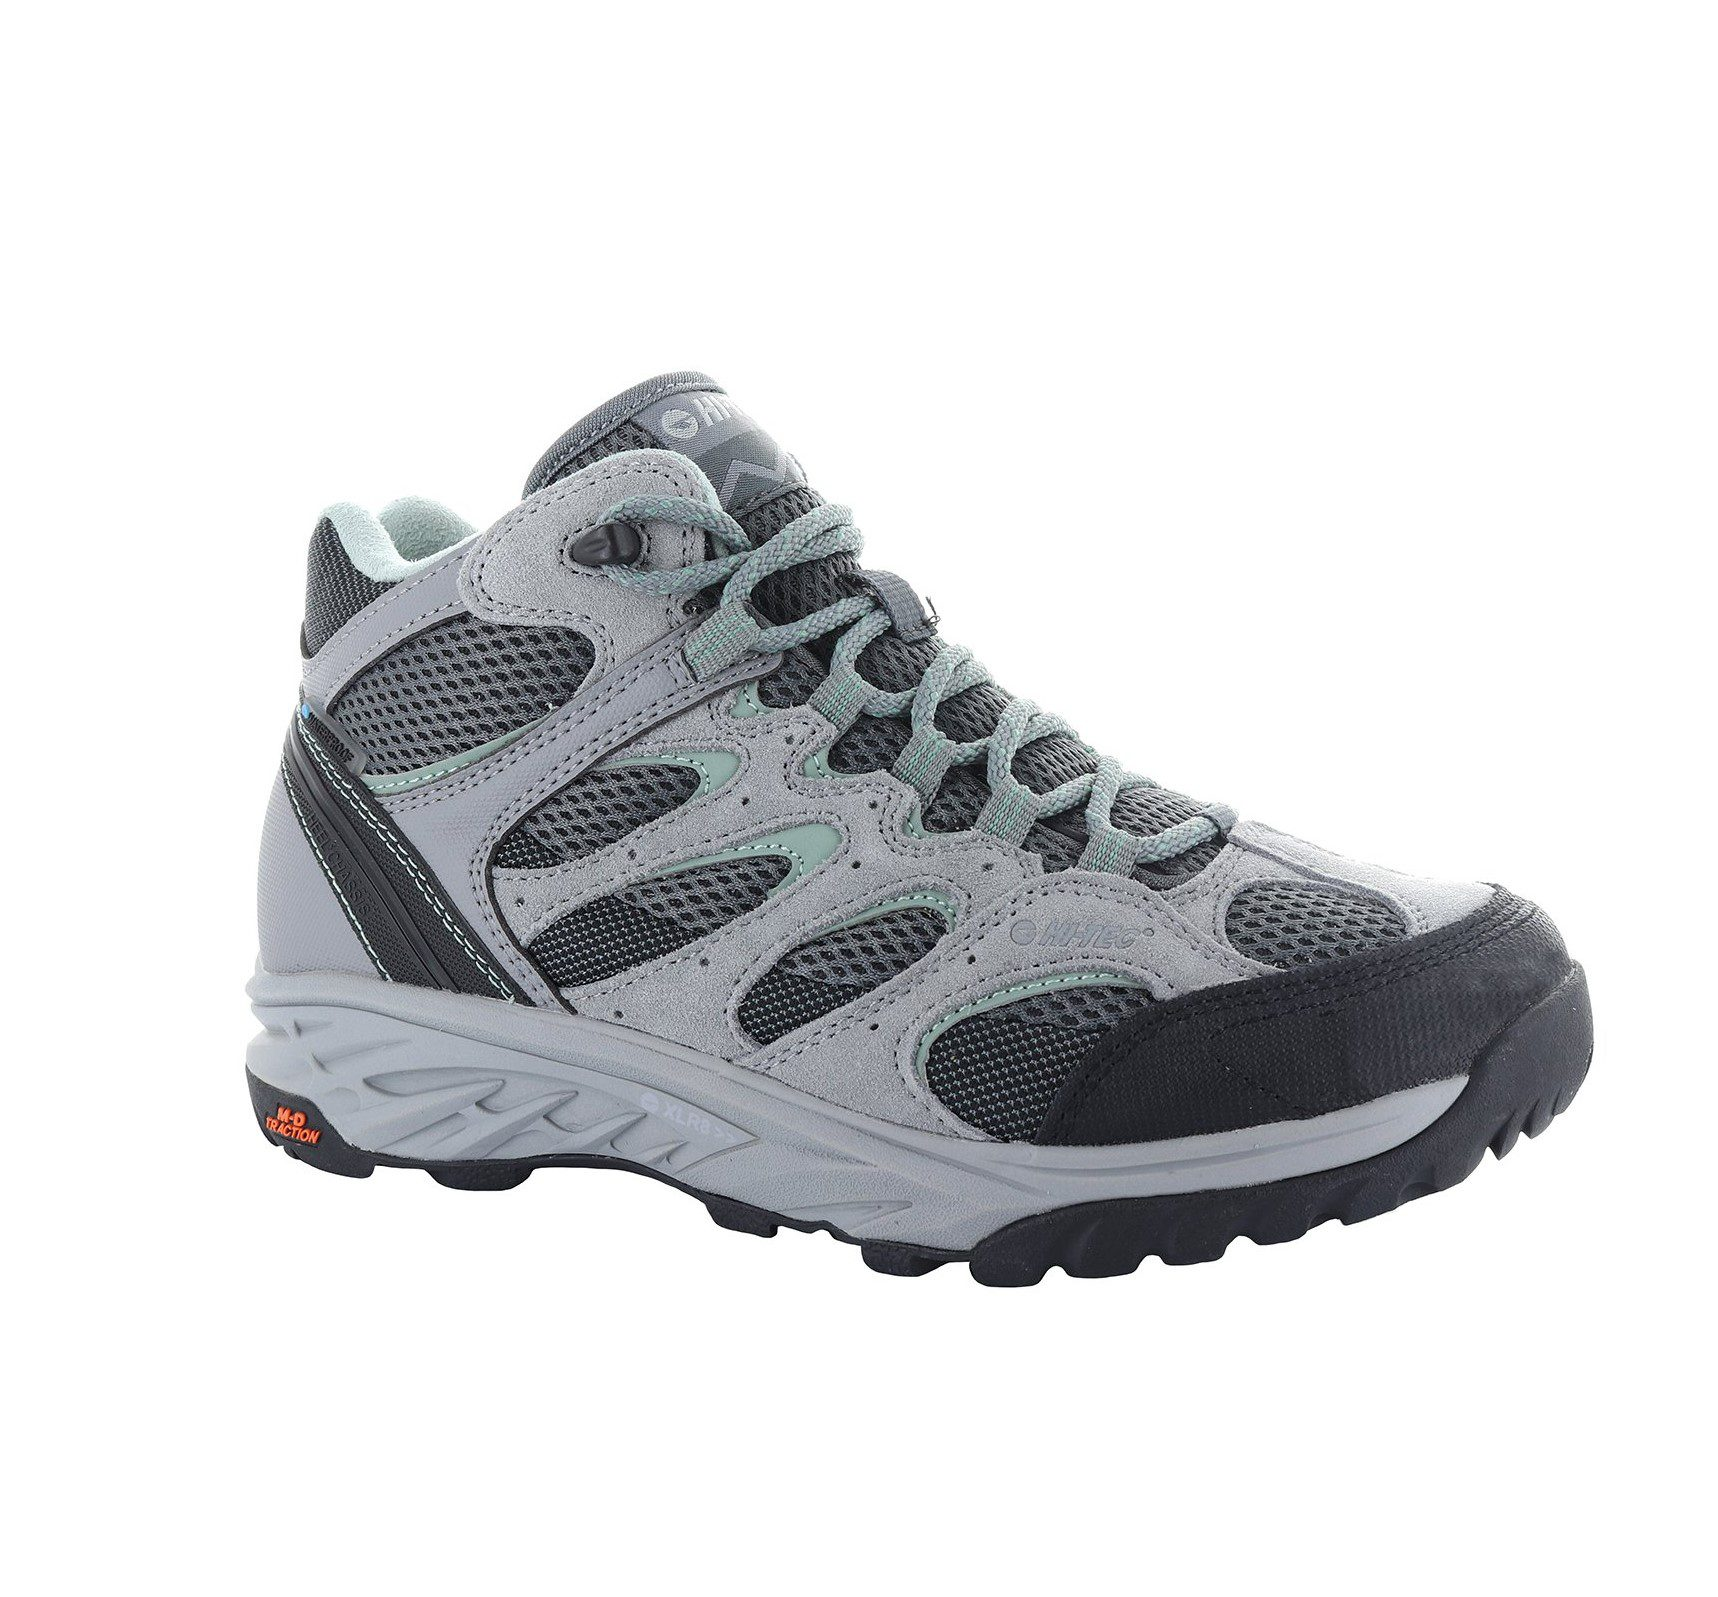 Hi-Tec Wild-fire low women's - grey - graphite - iceberg green